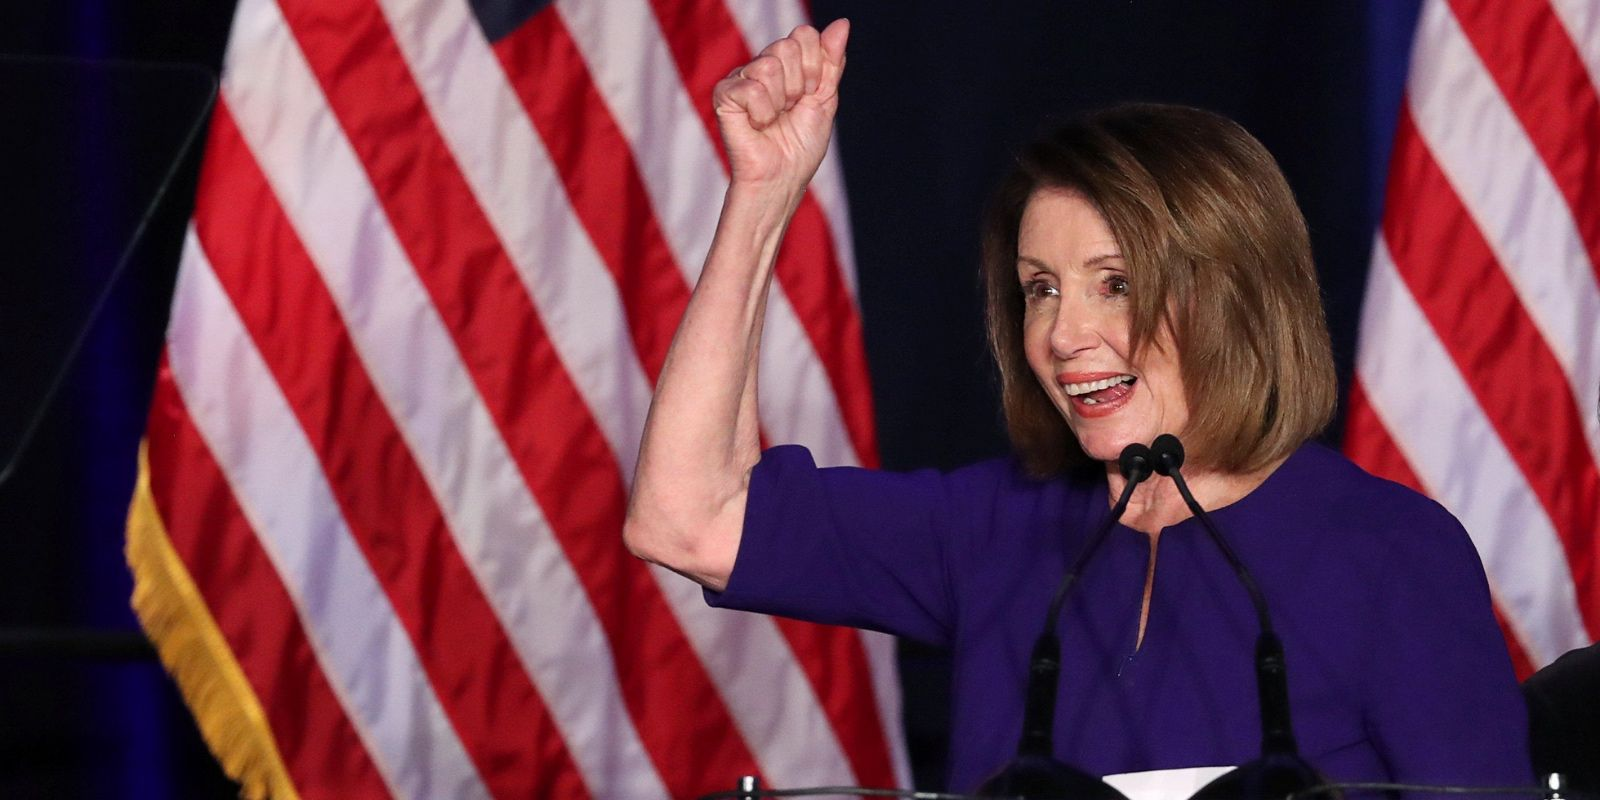 Pelosi threatens $5,000 fines for House members that bypass Capitol metal detectors